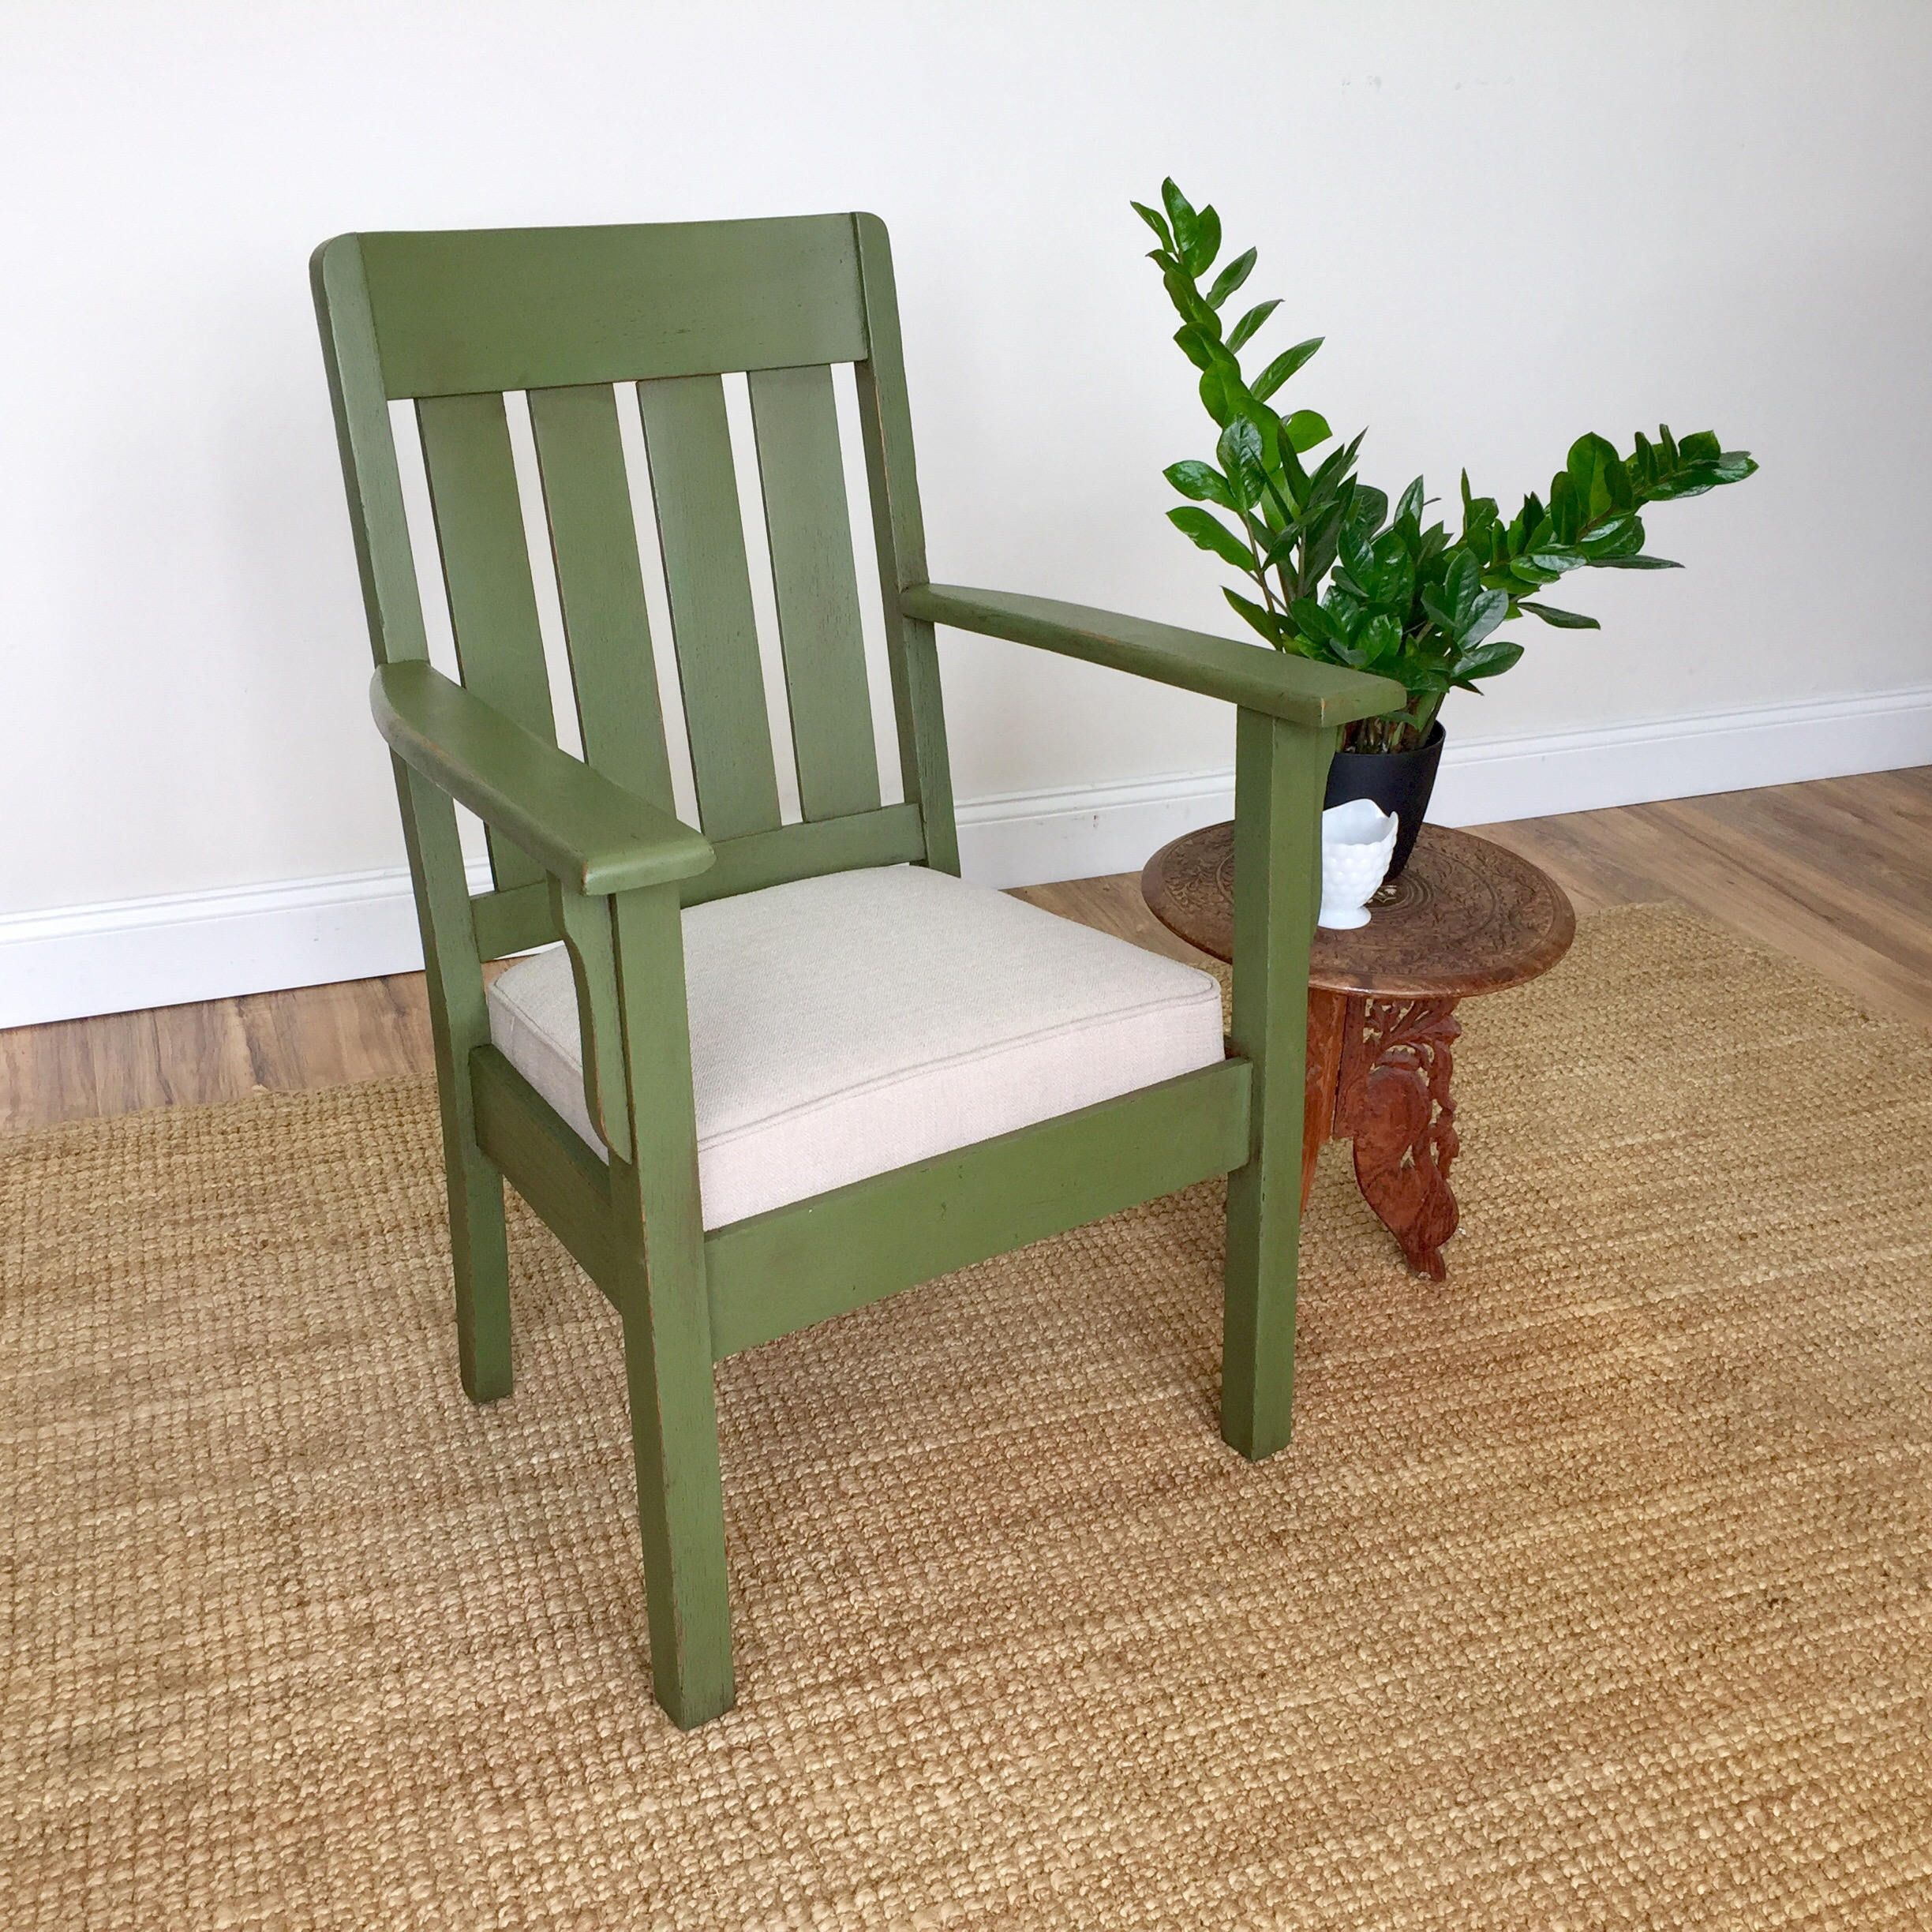 Antique Looking Furniture Cheap: Green Armchair - Mission Furniture